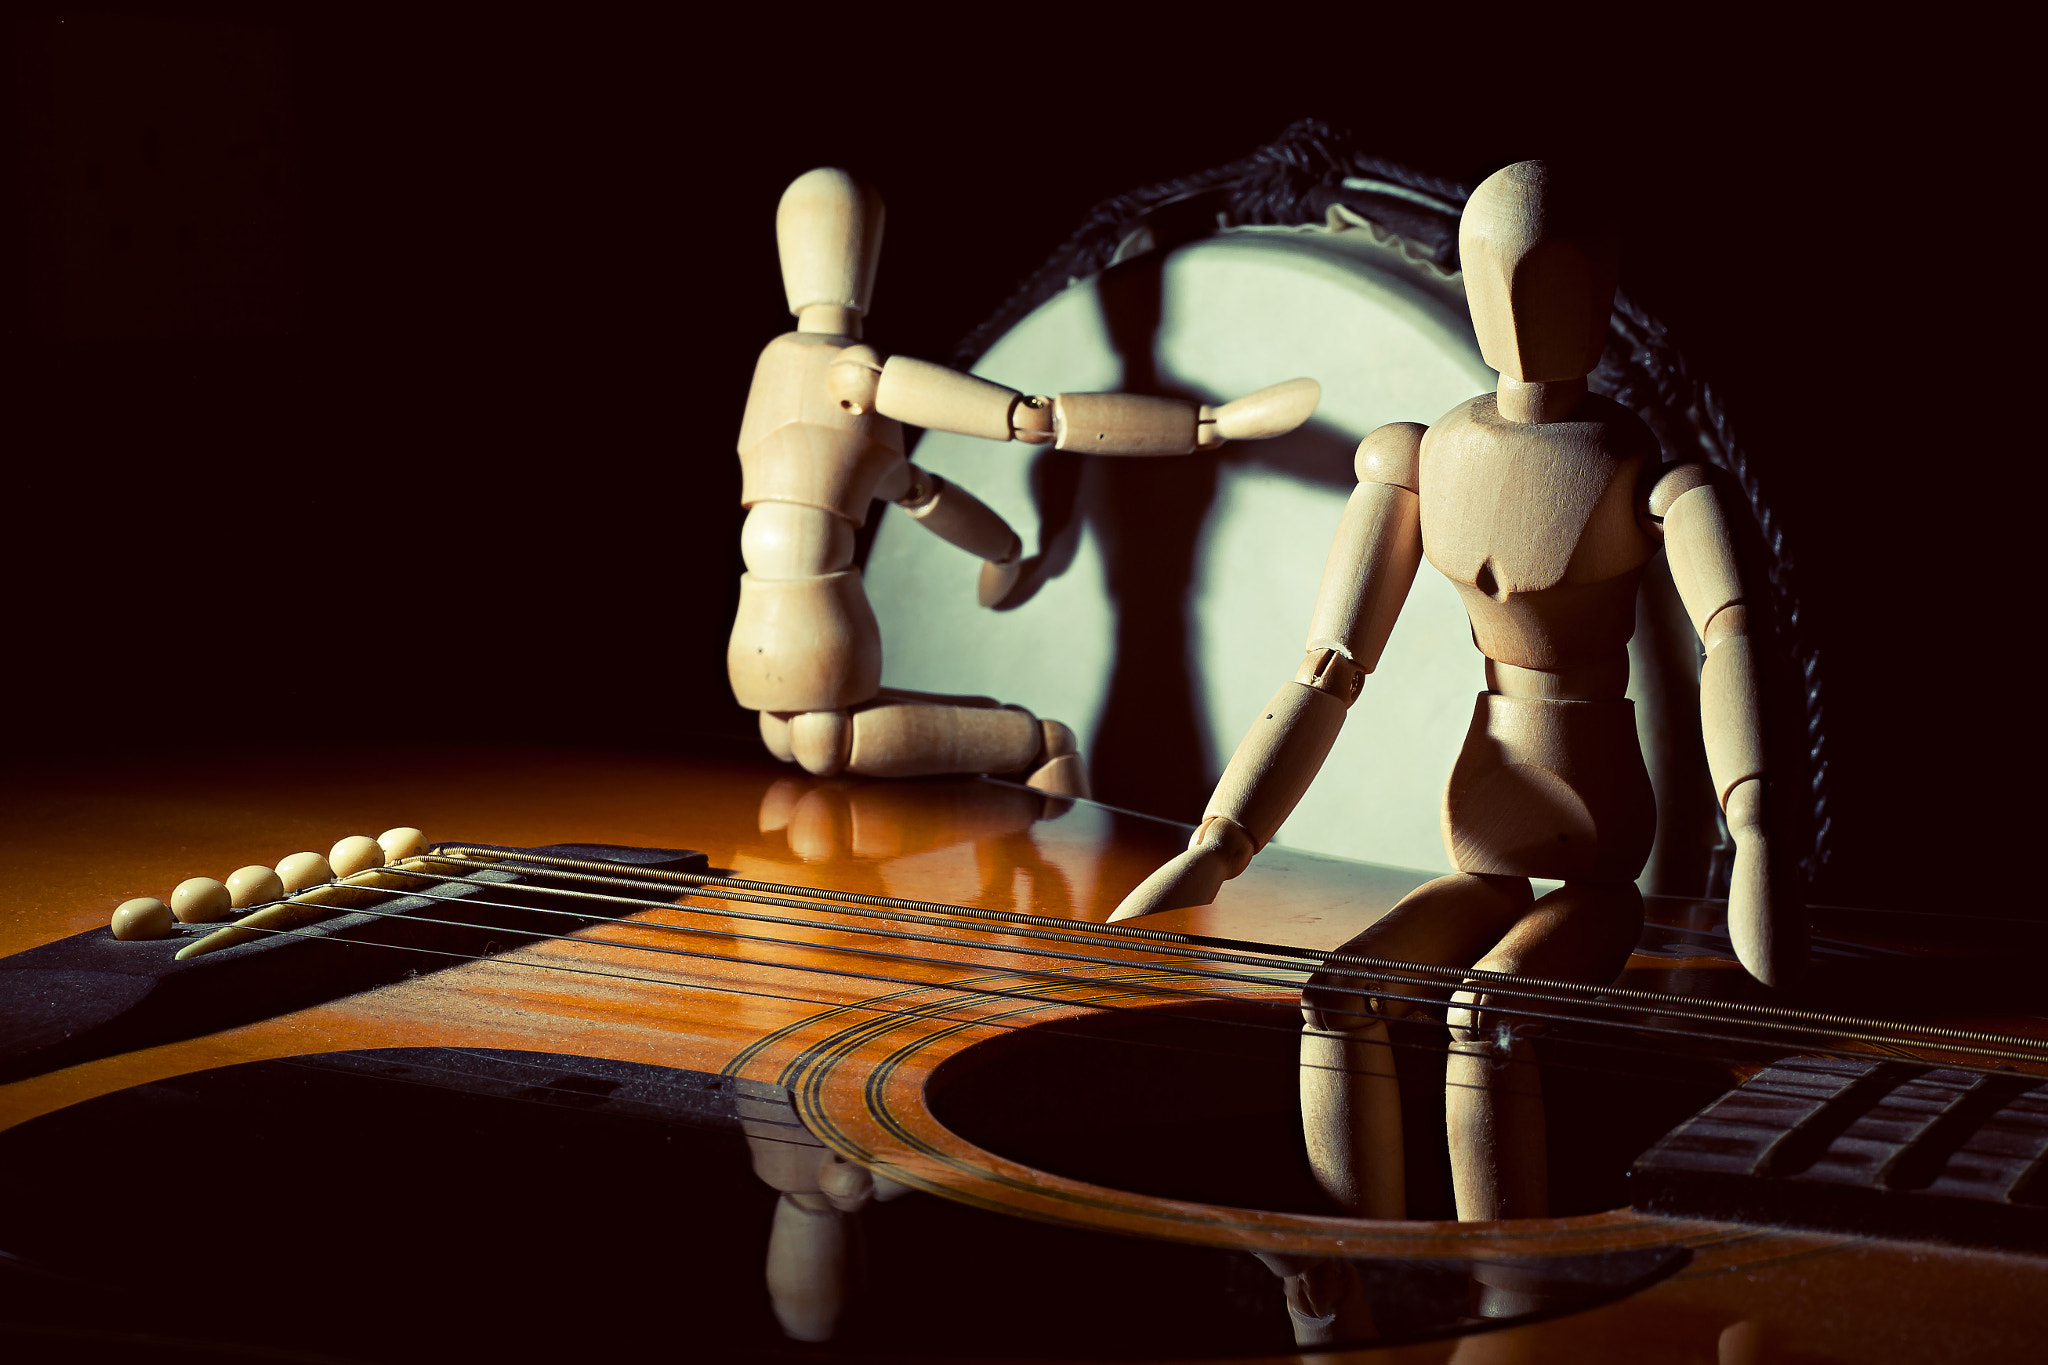 Photograph Lets Make Music by Daniel Talbot on 500px